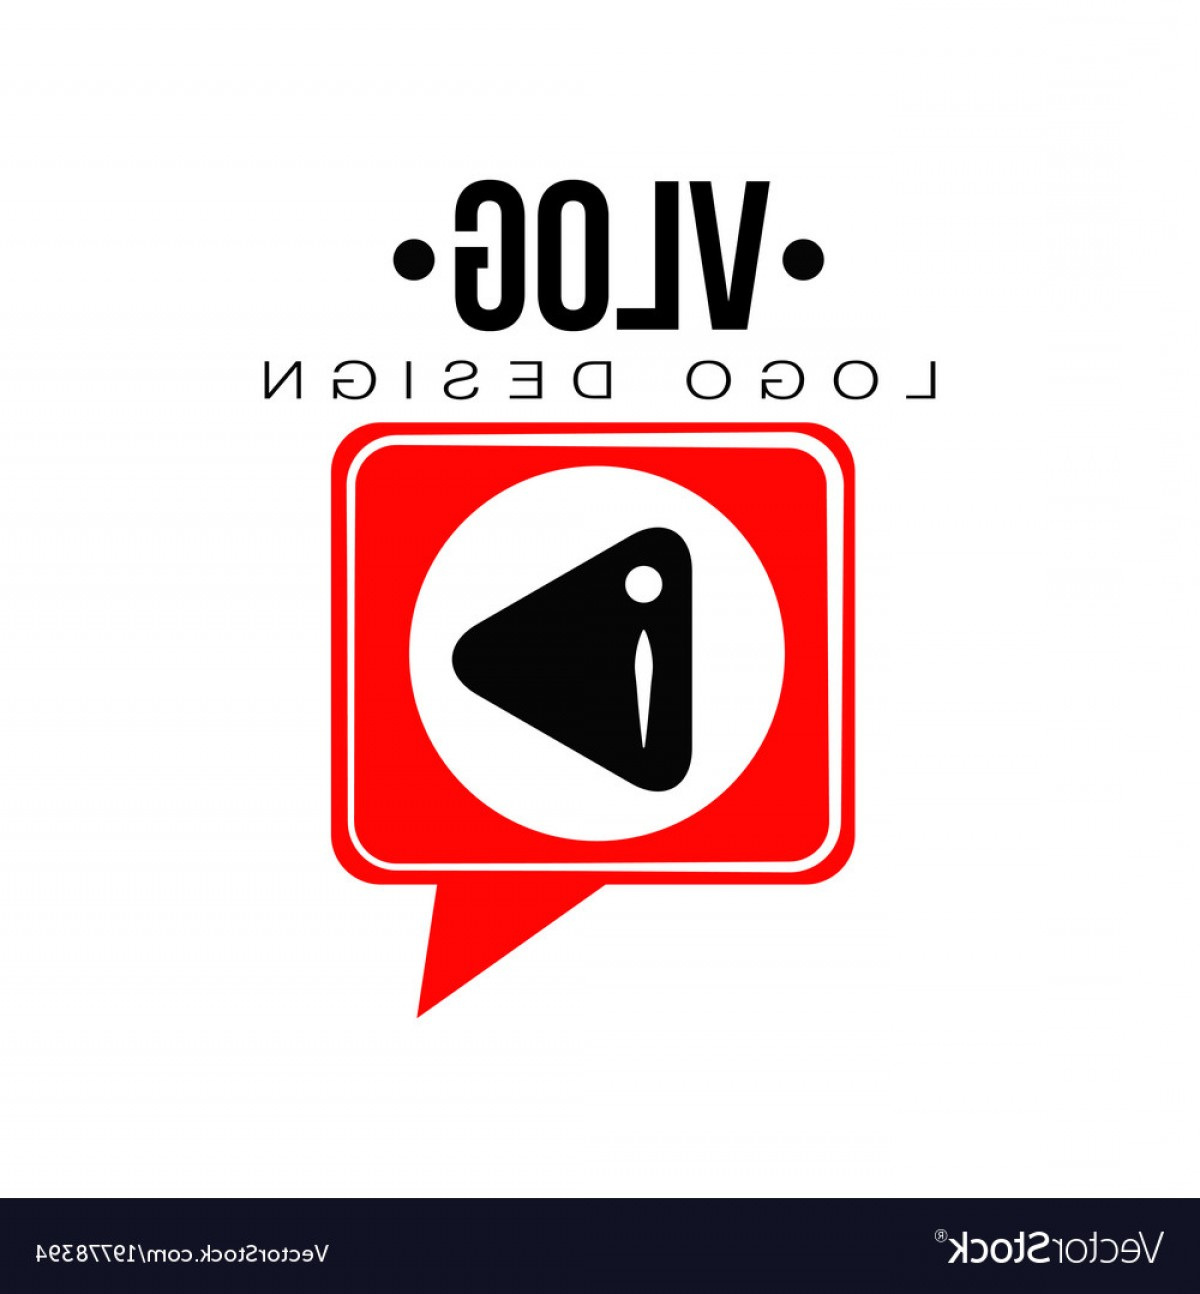 YouTube RedVector Real Life: Flat Emblem With Black Play Button In Red Vector